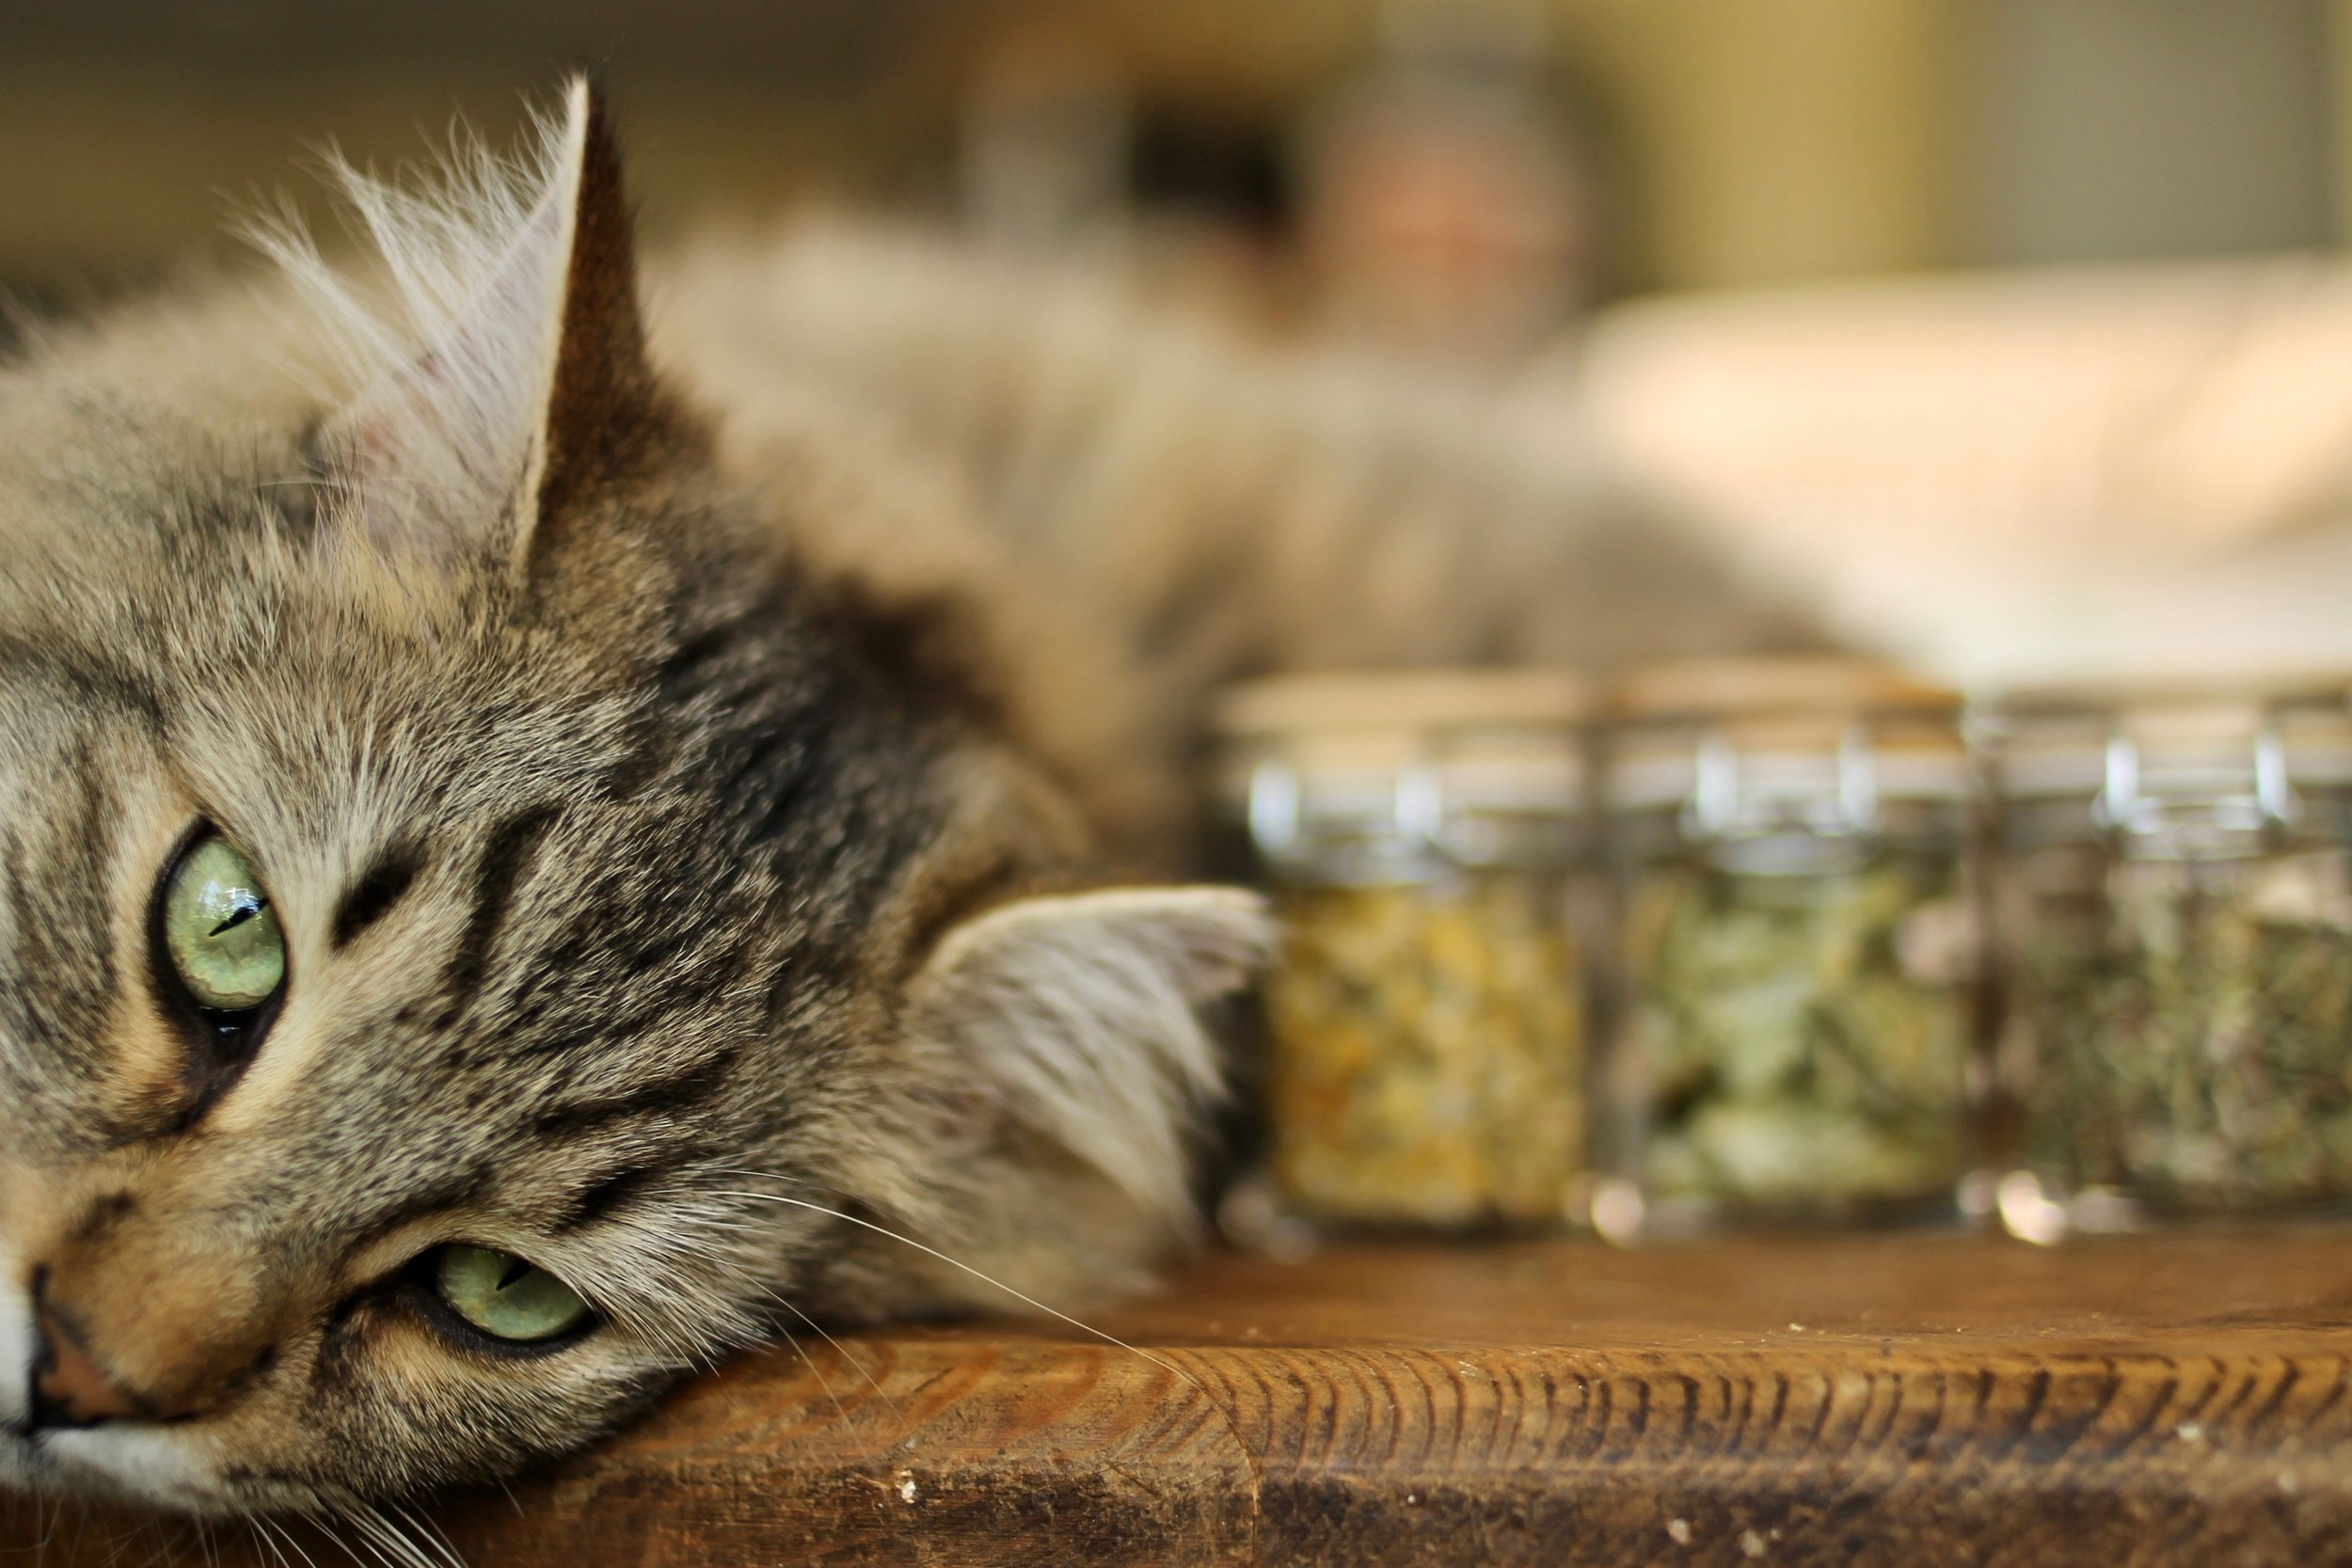 Cats can benefit from smelling different herbs